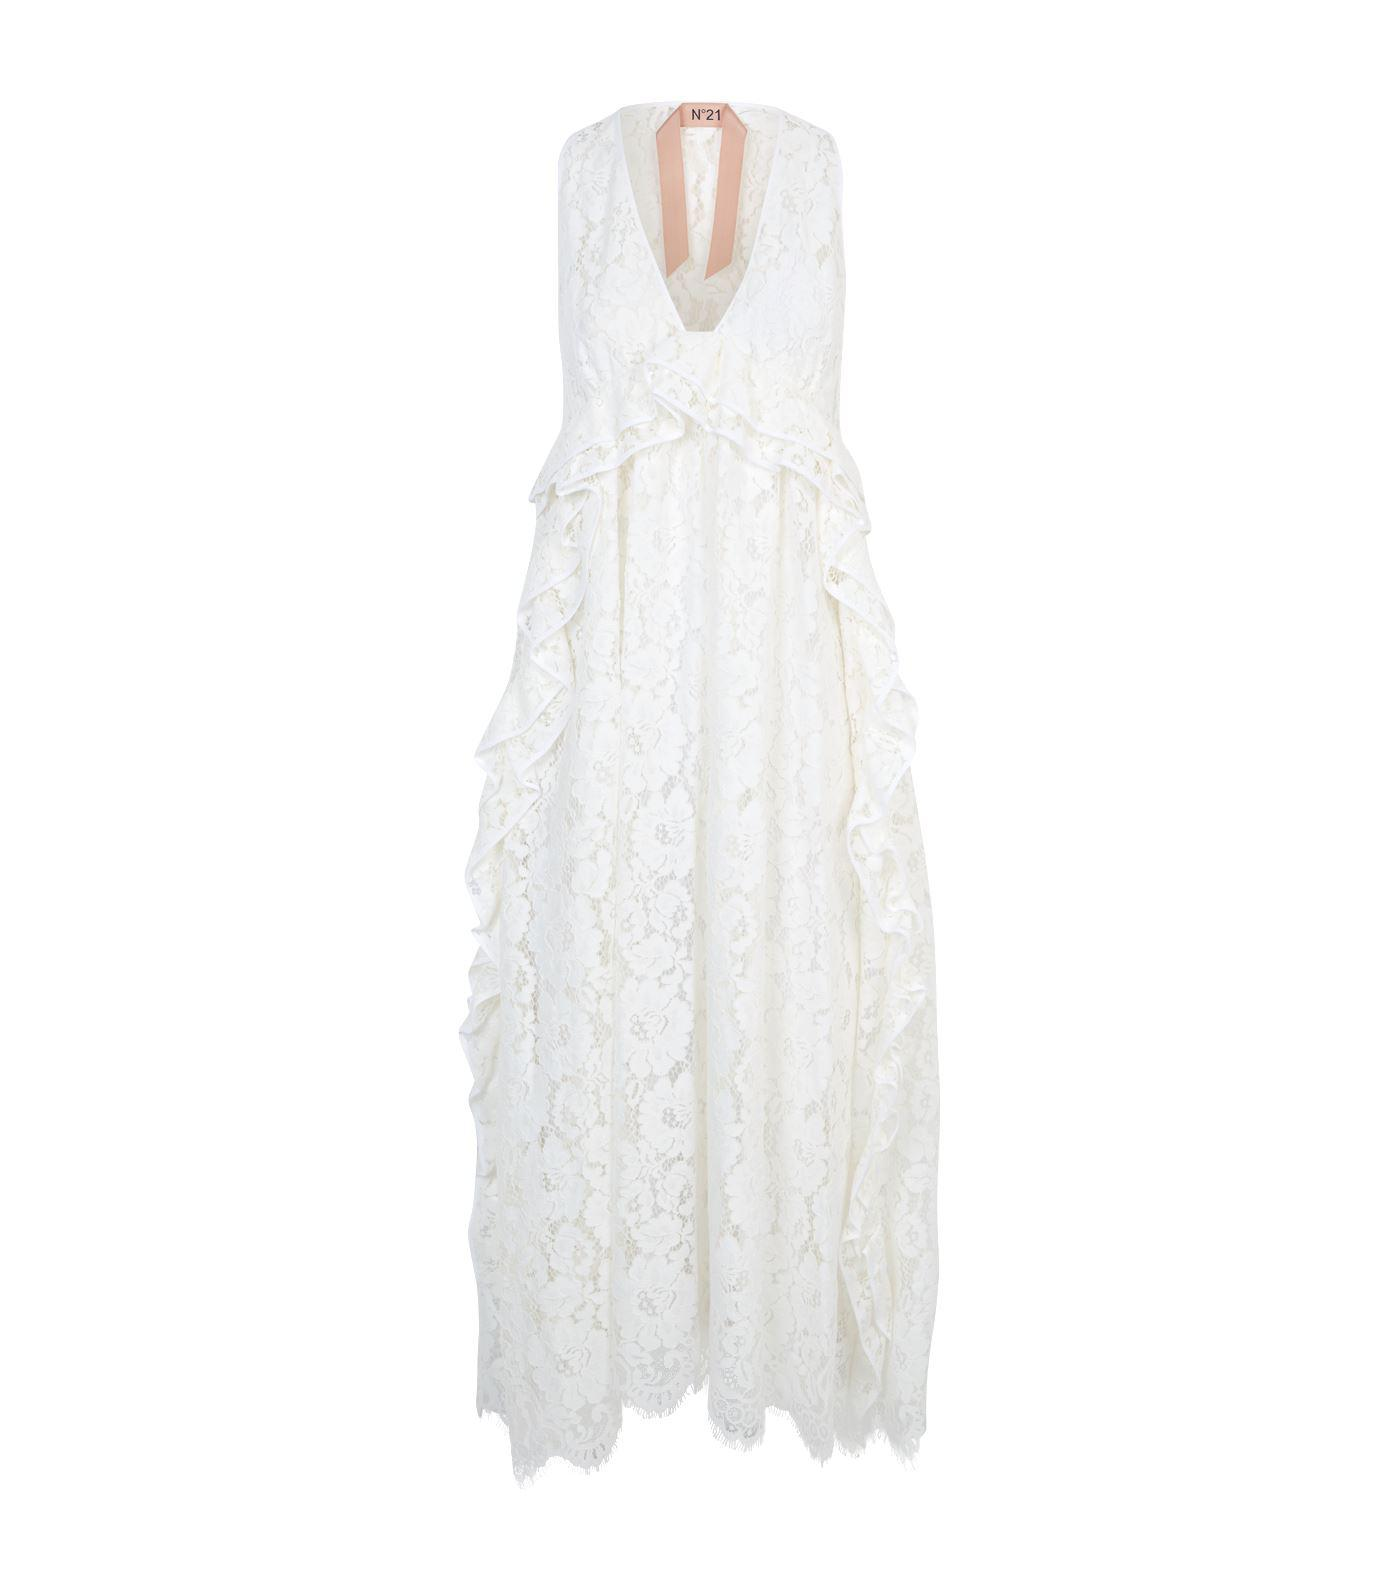 N°21 - White Lace Midi Dress - Lyst. View fullscreen 71fb66794